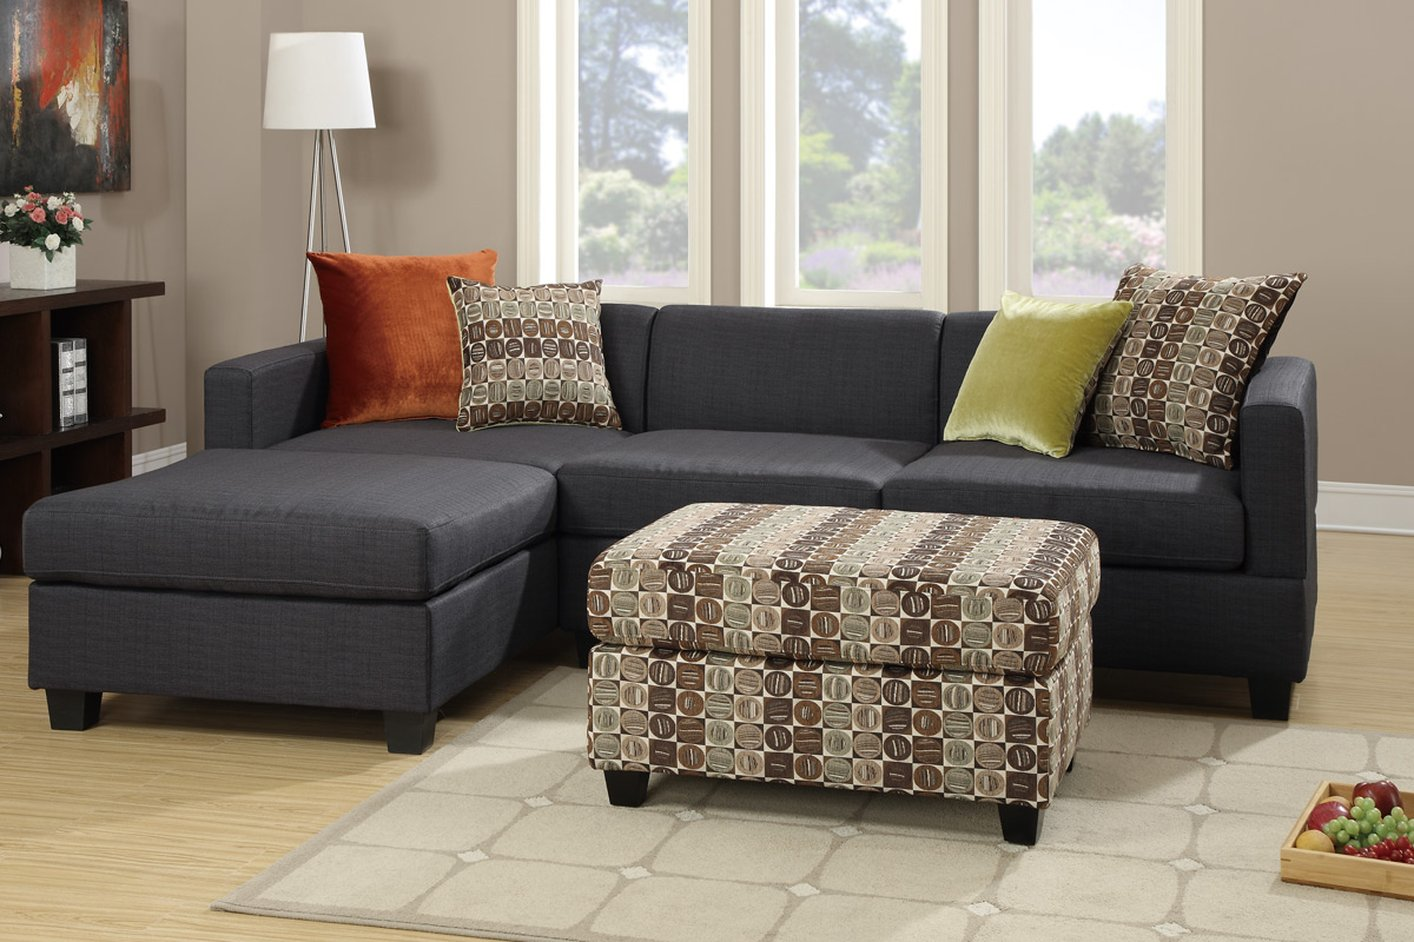 Poundex maribel f7170 black fabric sectional sofa steal for Furniture 90036